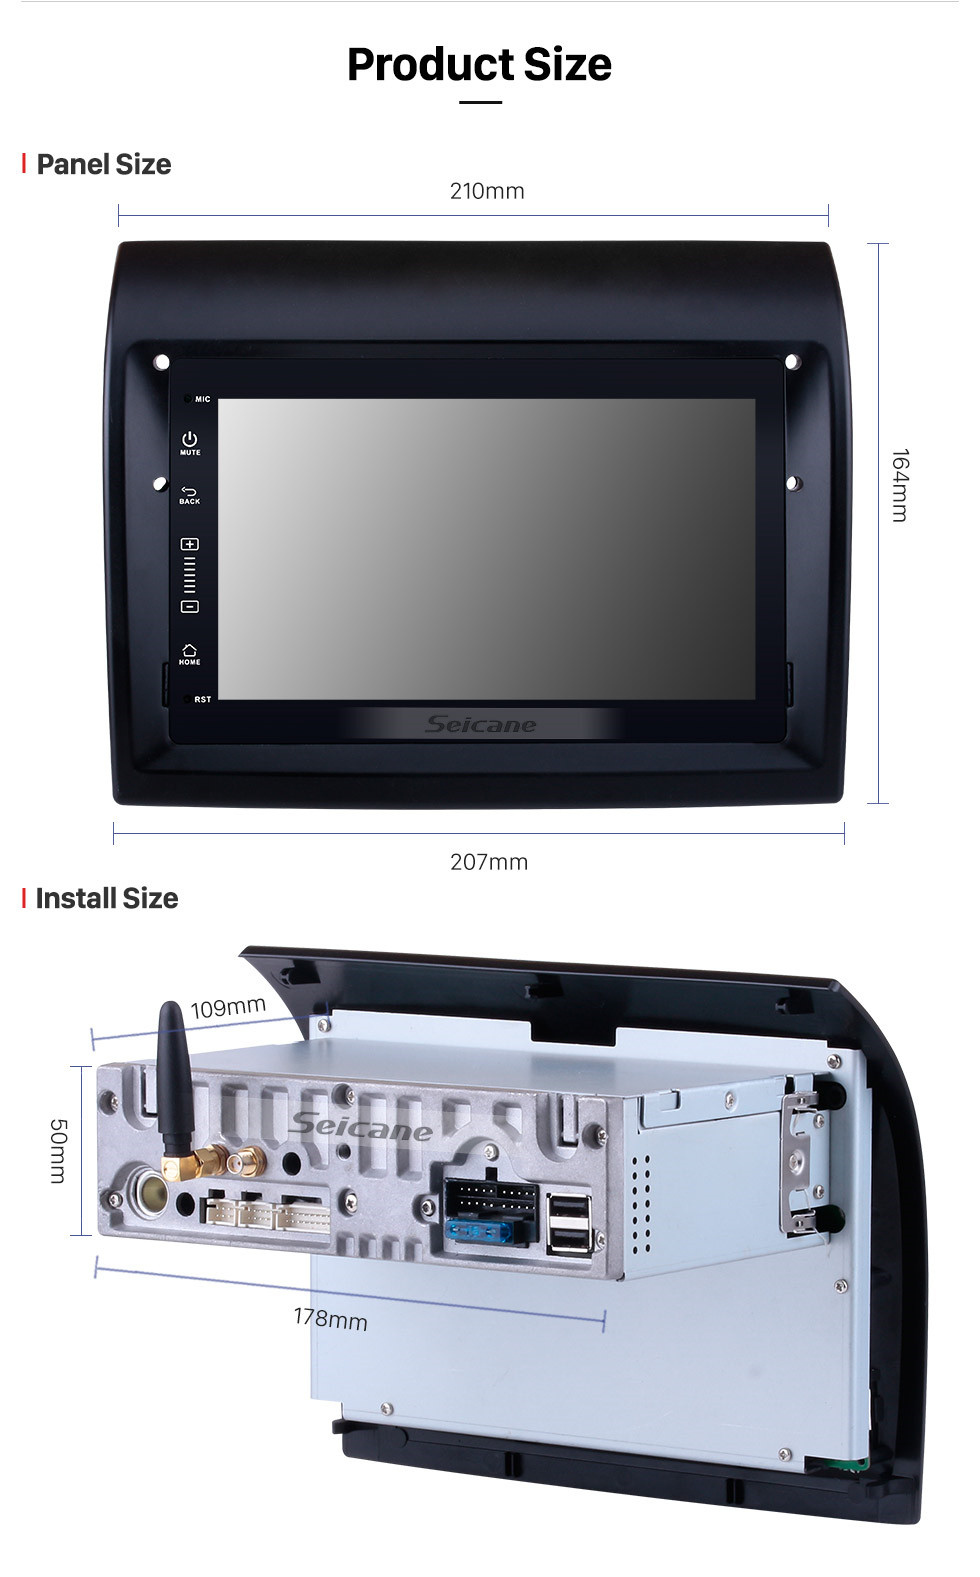 Seicane Android 10.0 7 inch HD Touchscreen Radio GPS Navigation Head unit for 2007-2016 Fiat Ducato/Peugeot Boxer with Bluetooth music Wifi USB Steering Wheel Control support Rearview Camera DVR DVD Player 1080P Video